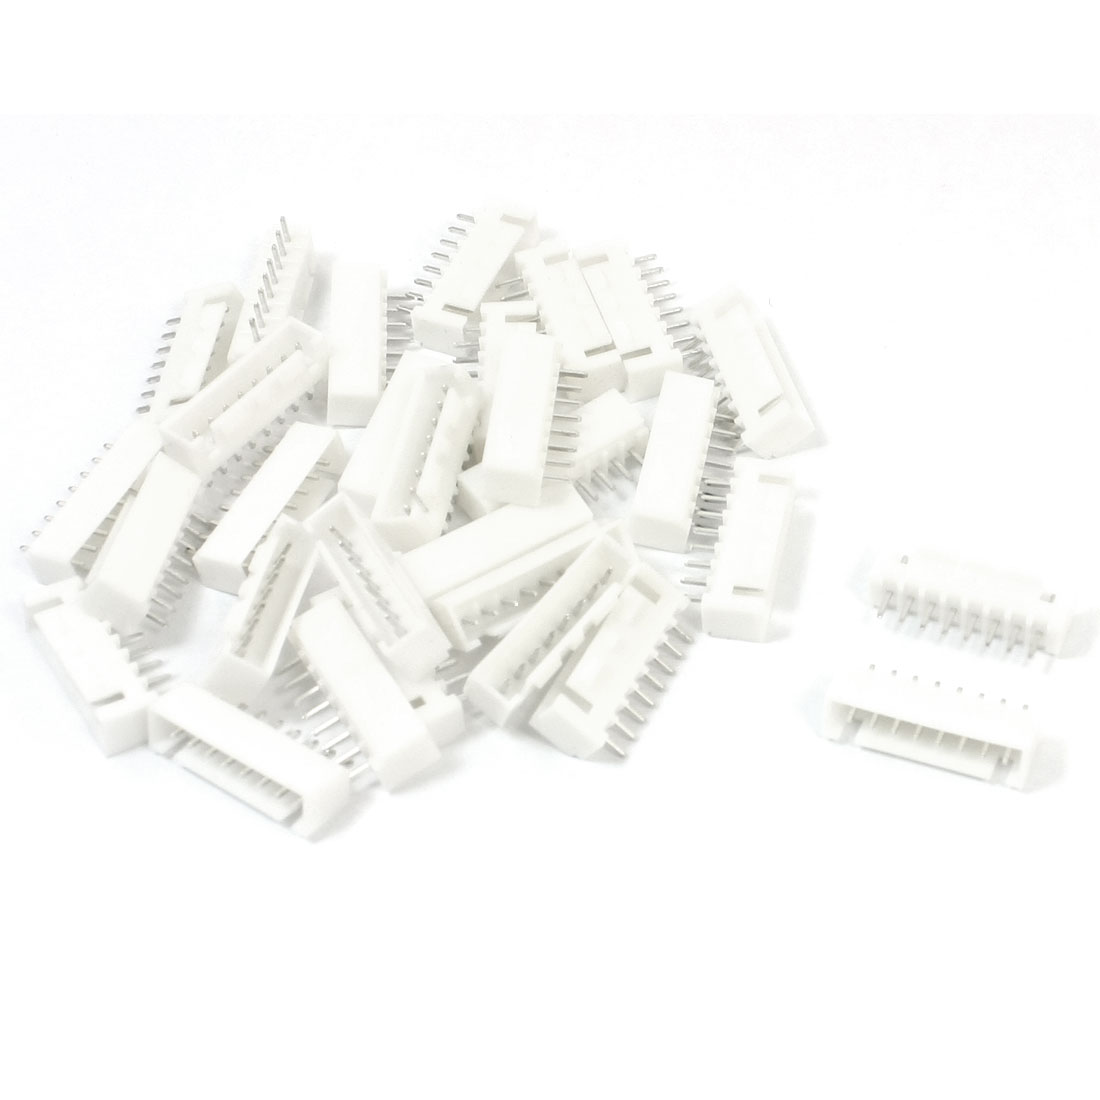 2.54mm Pitch 8Pin Straight Pins White PCB Mount Header Socket 30 Pcs